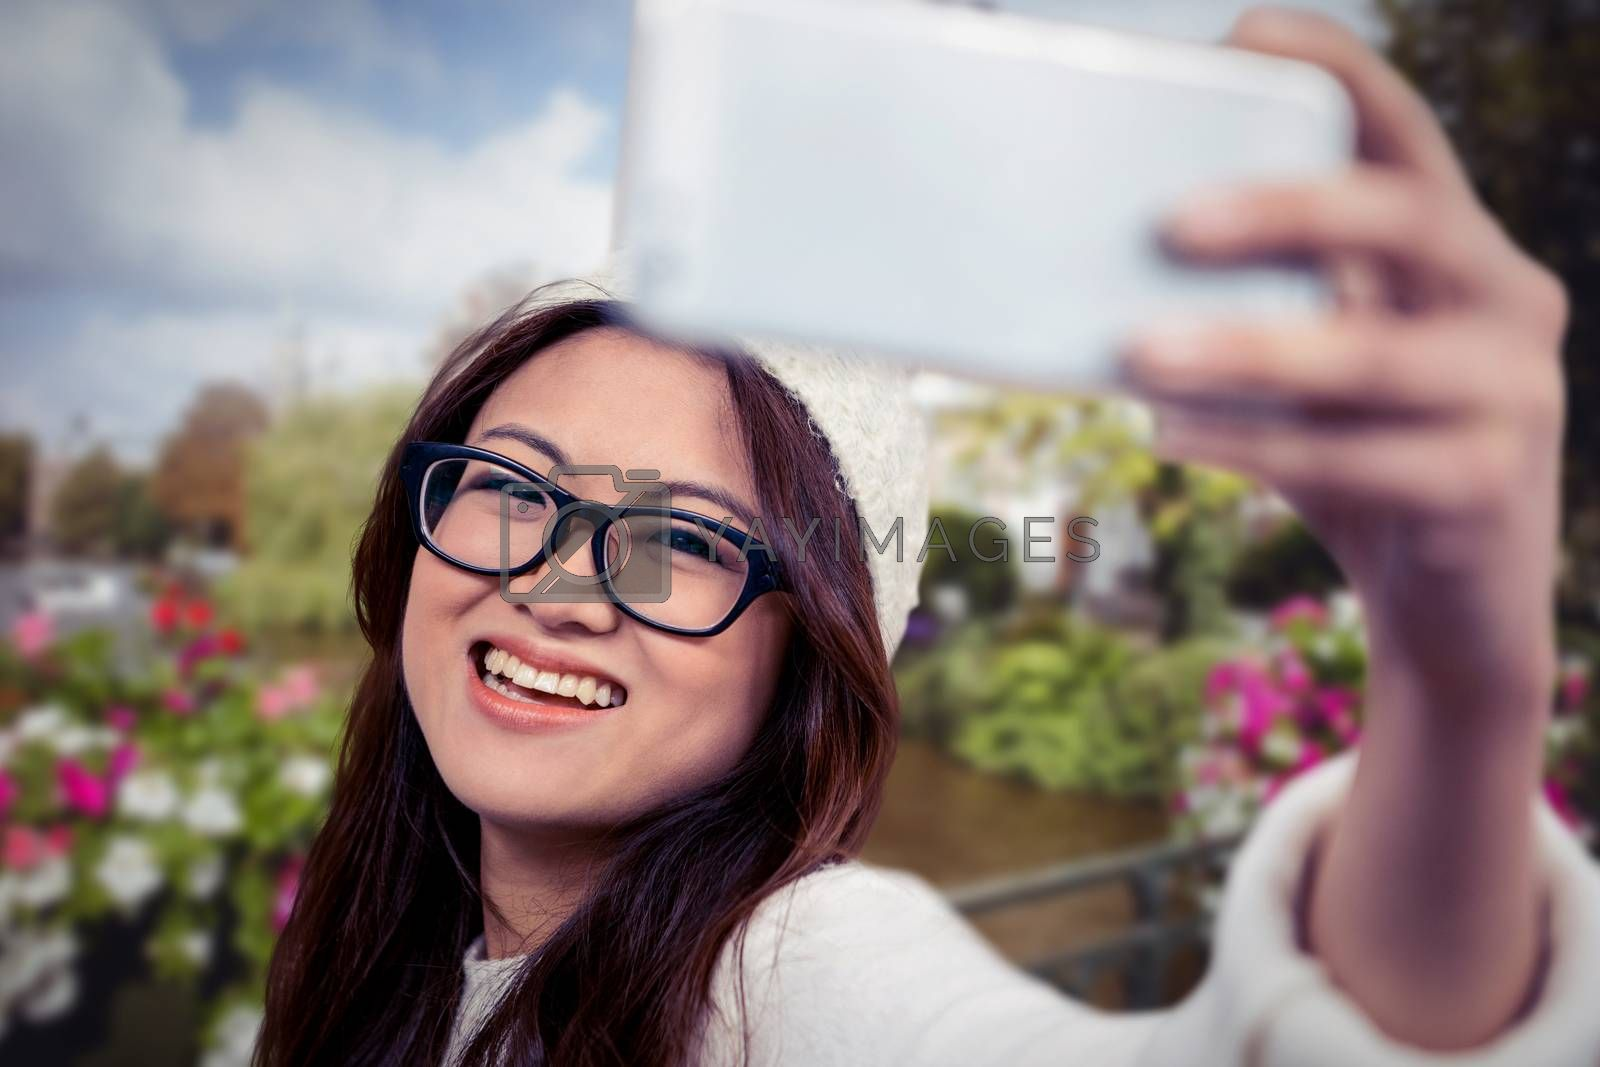 Smiling Asian woman taking selfie against canal in amsterdam